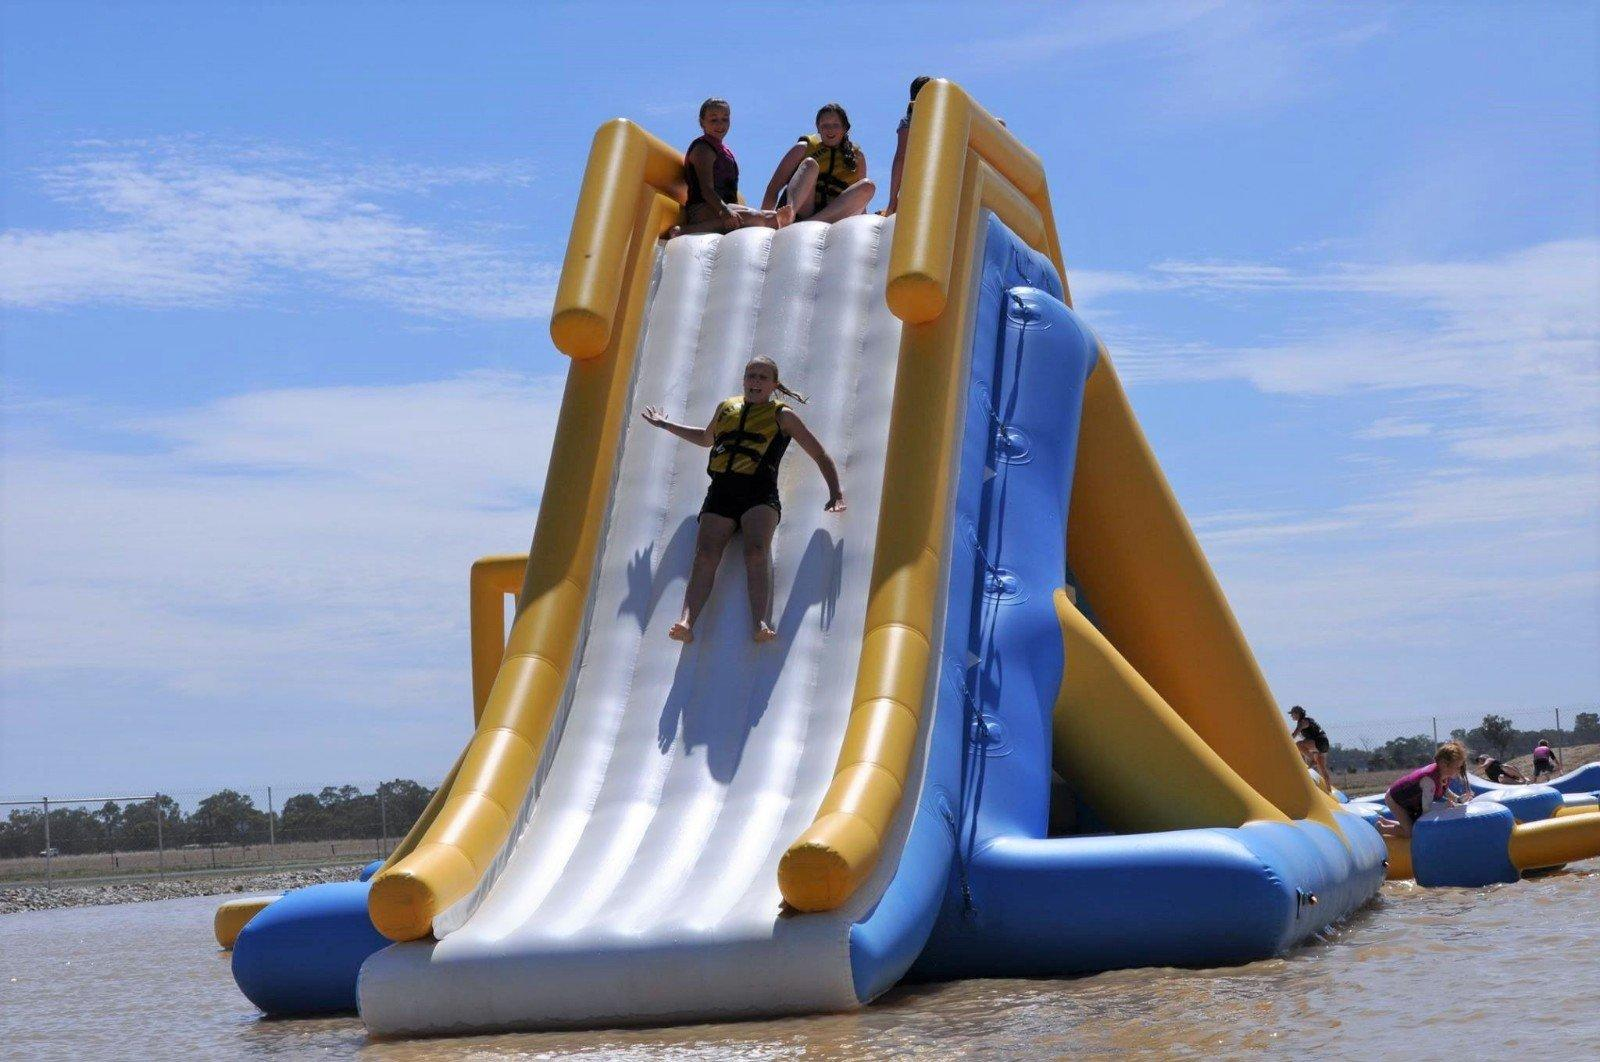 Bouncia tuv inflatable backyard water park series for outdoors